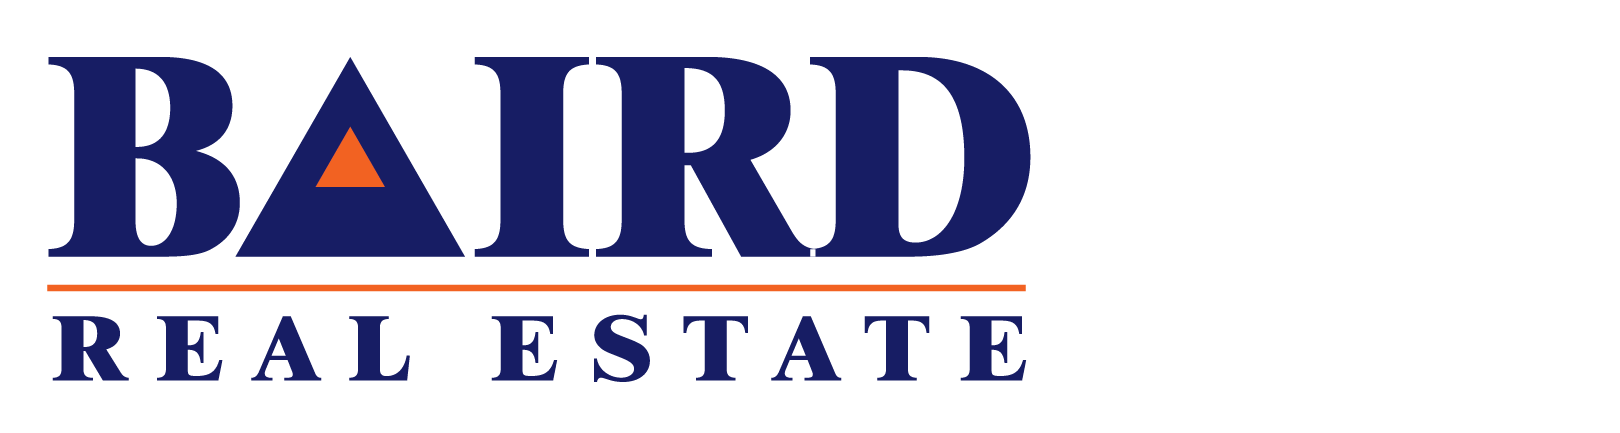 Baird Real Estate - logo